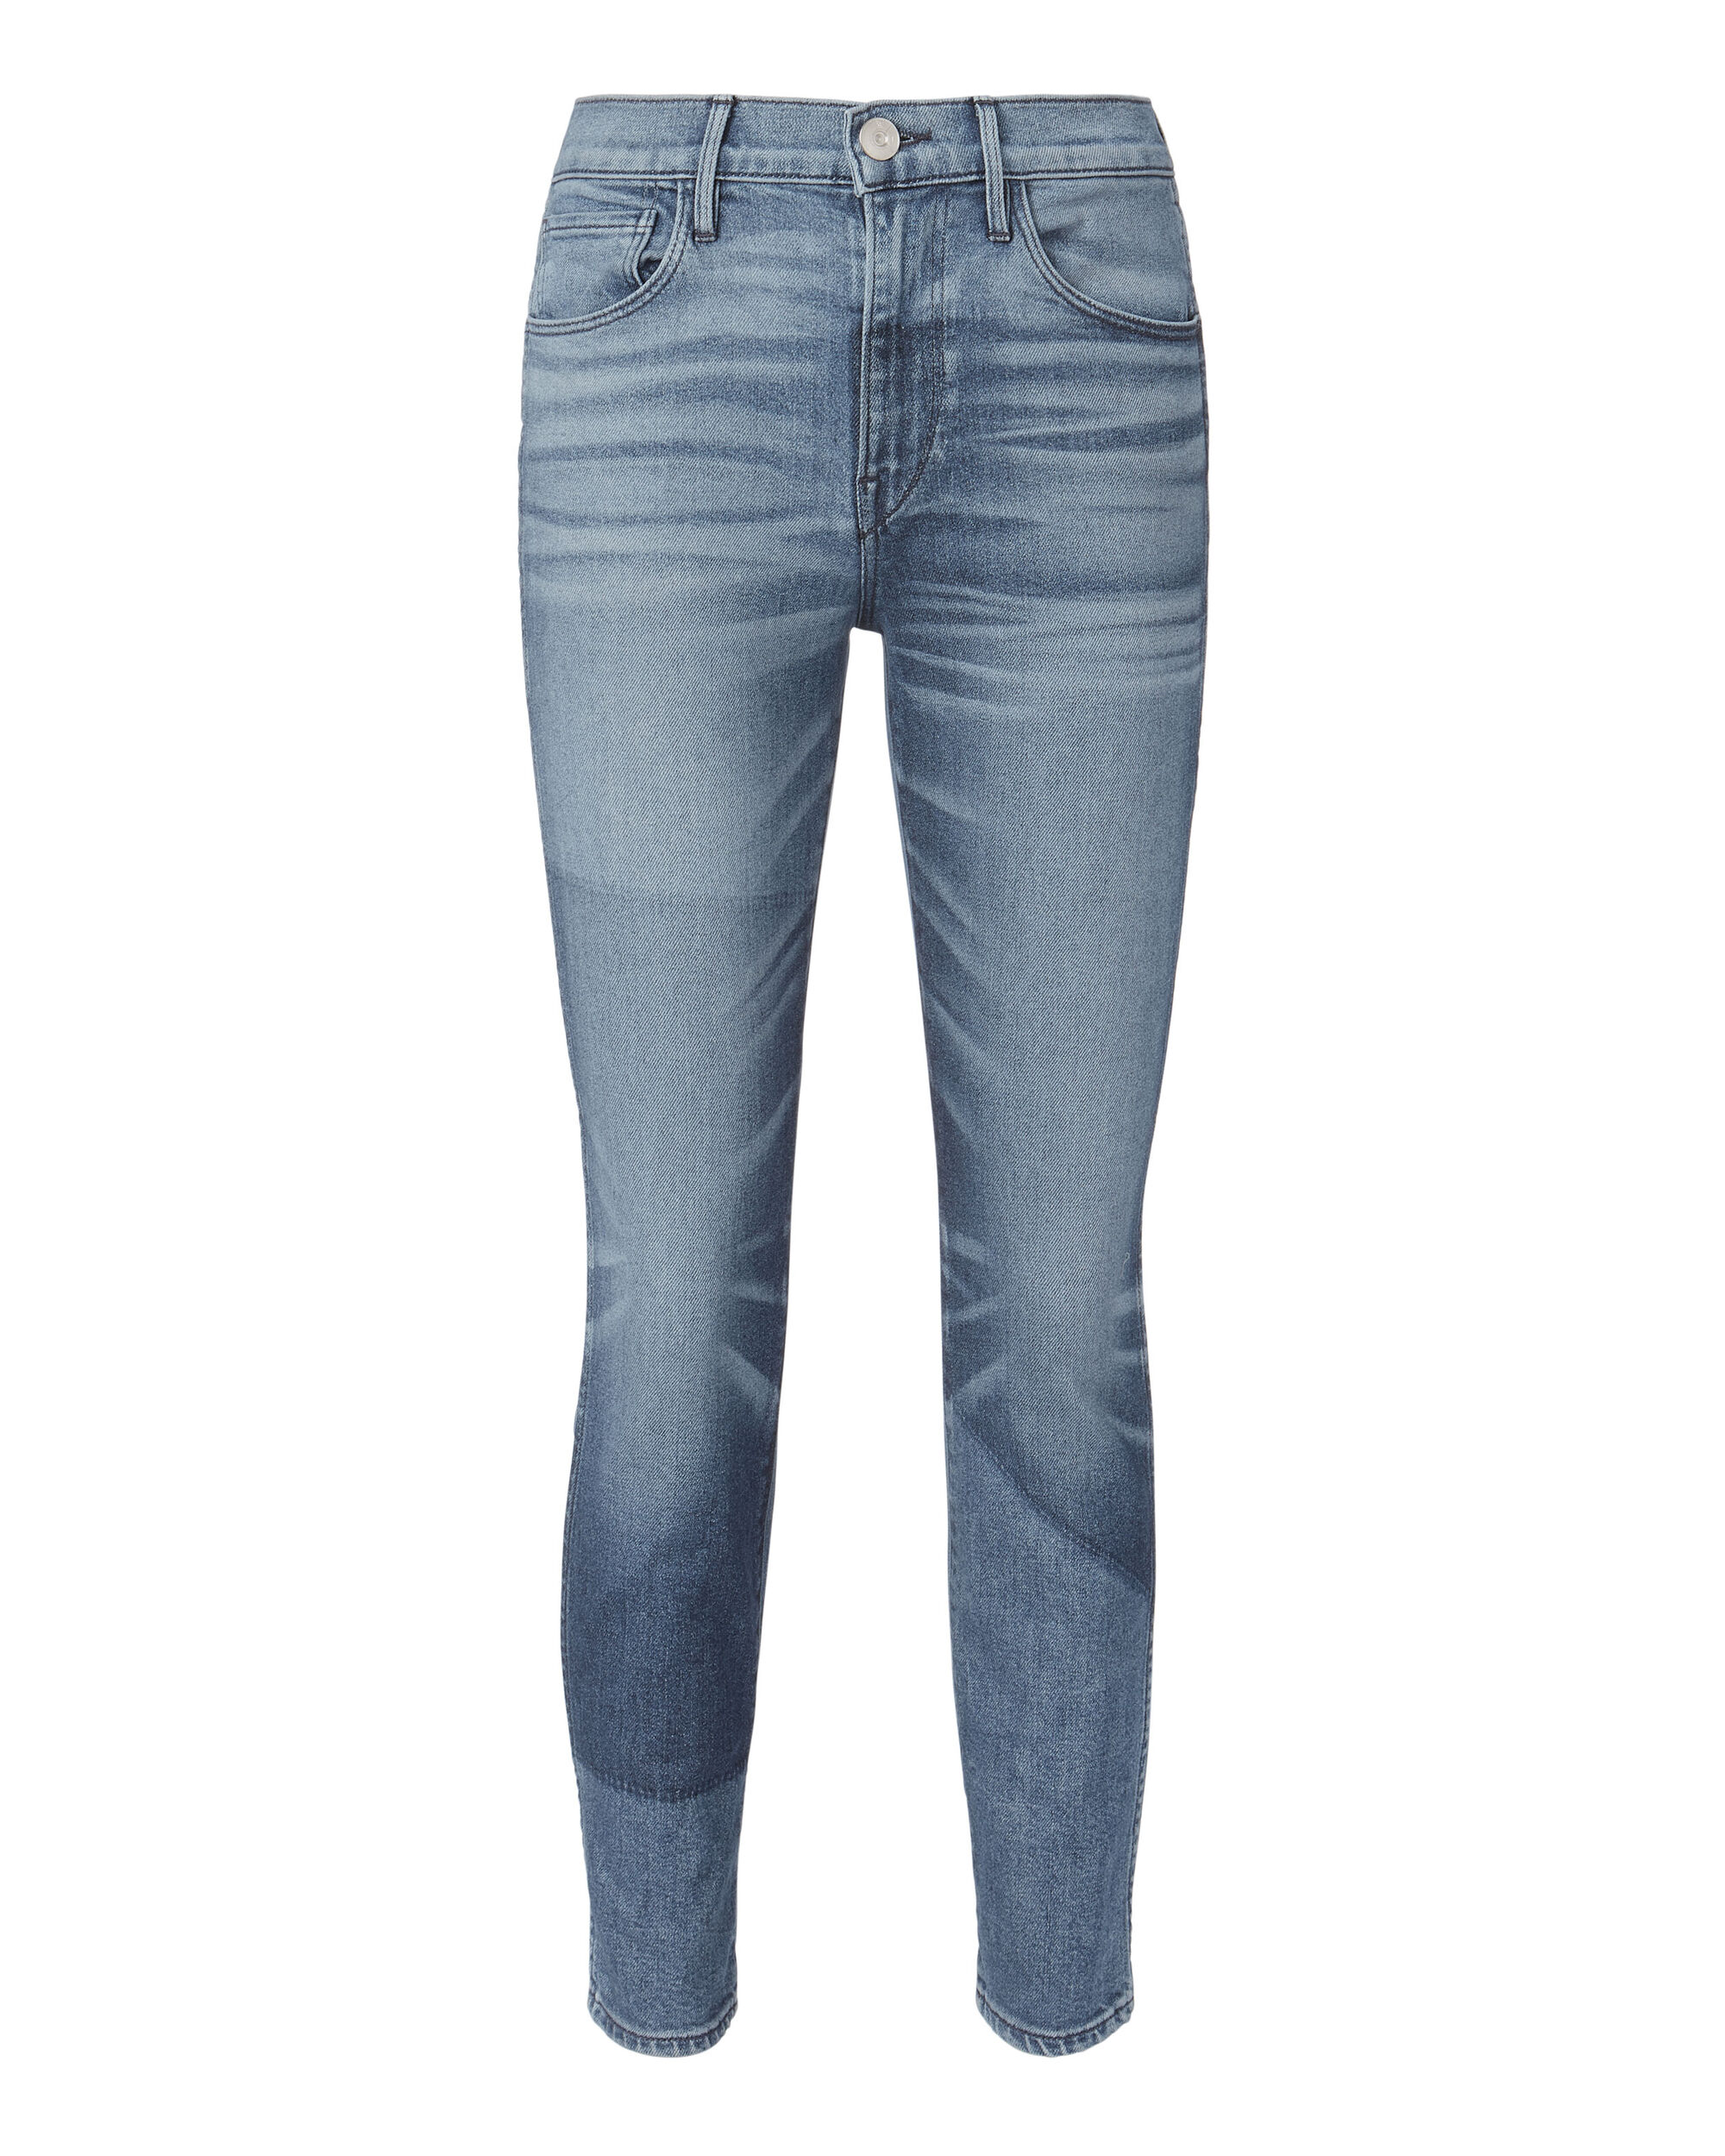 Shadow Authentic Cropped Jeans, DENIM, hi-res